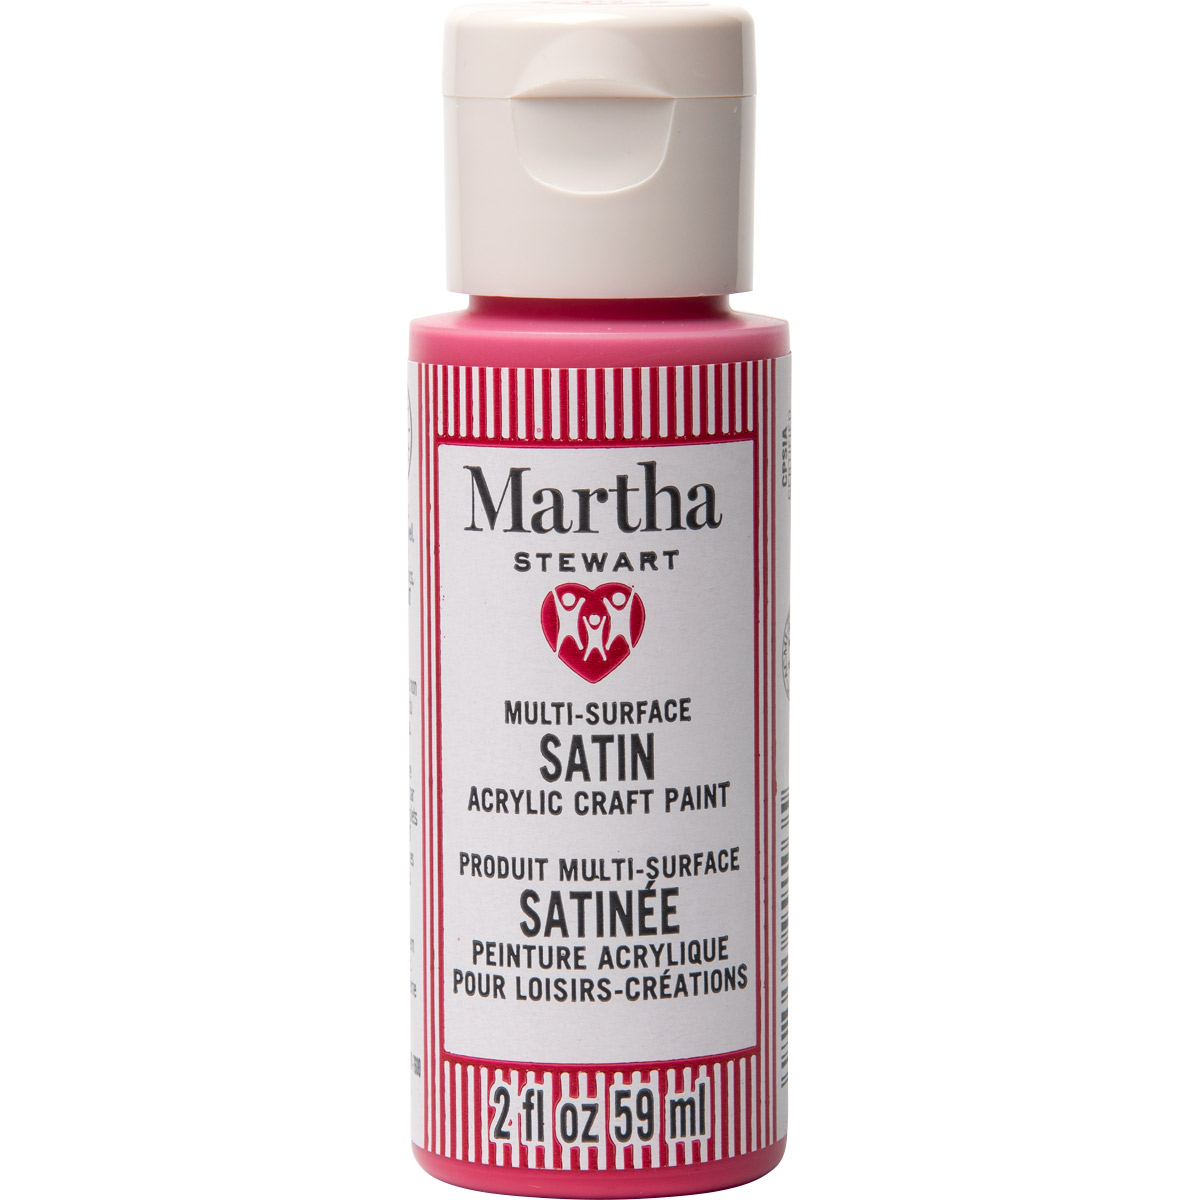 Martha Stewart ® Multi-Surface Satin Acrylic Craft Paint CPSIA - Candy Apple, 2 oz. - 99103